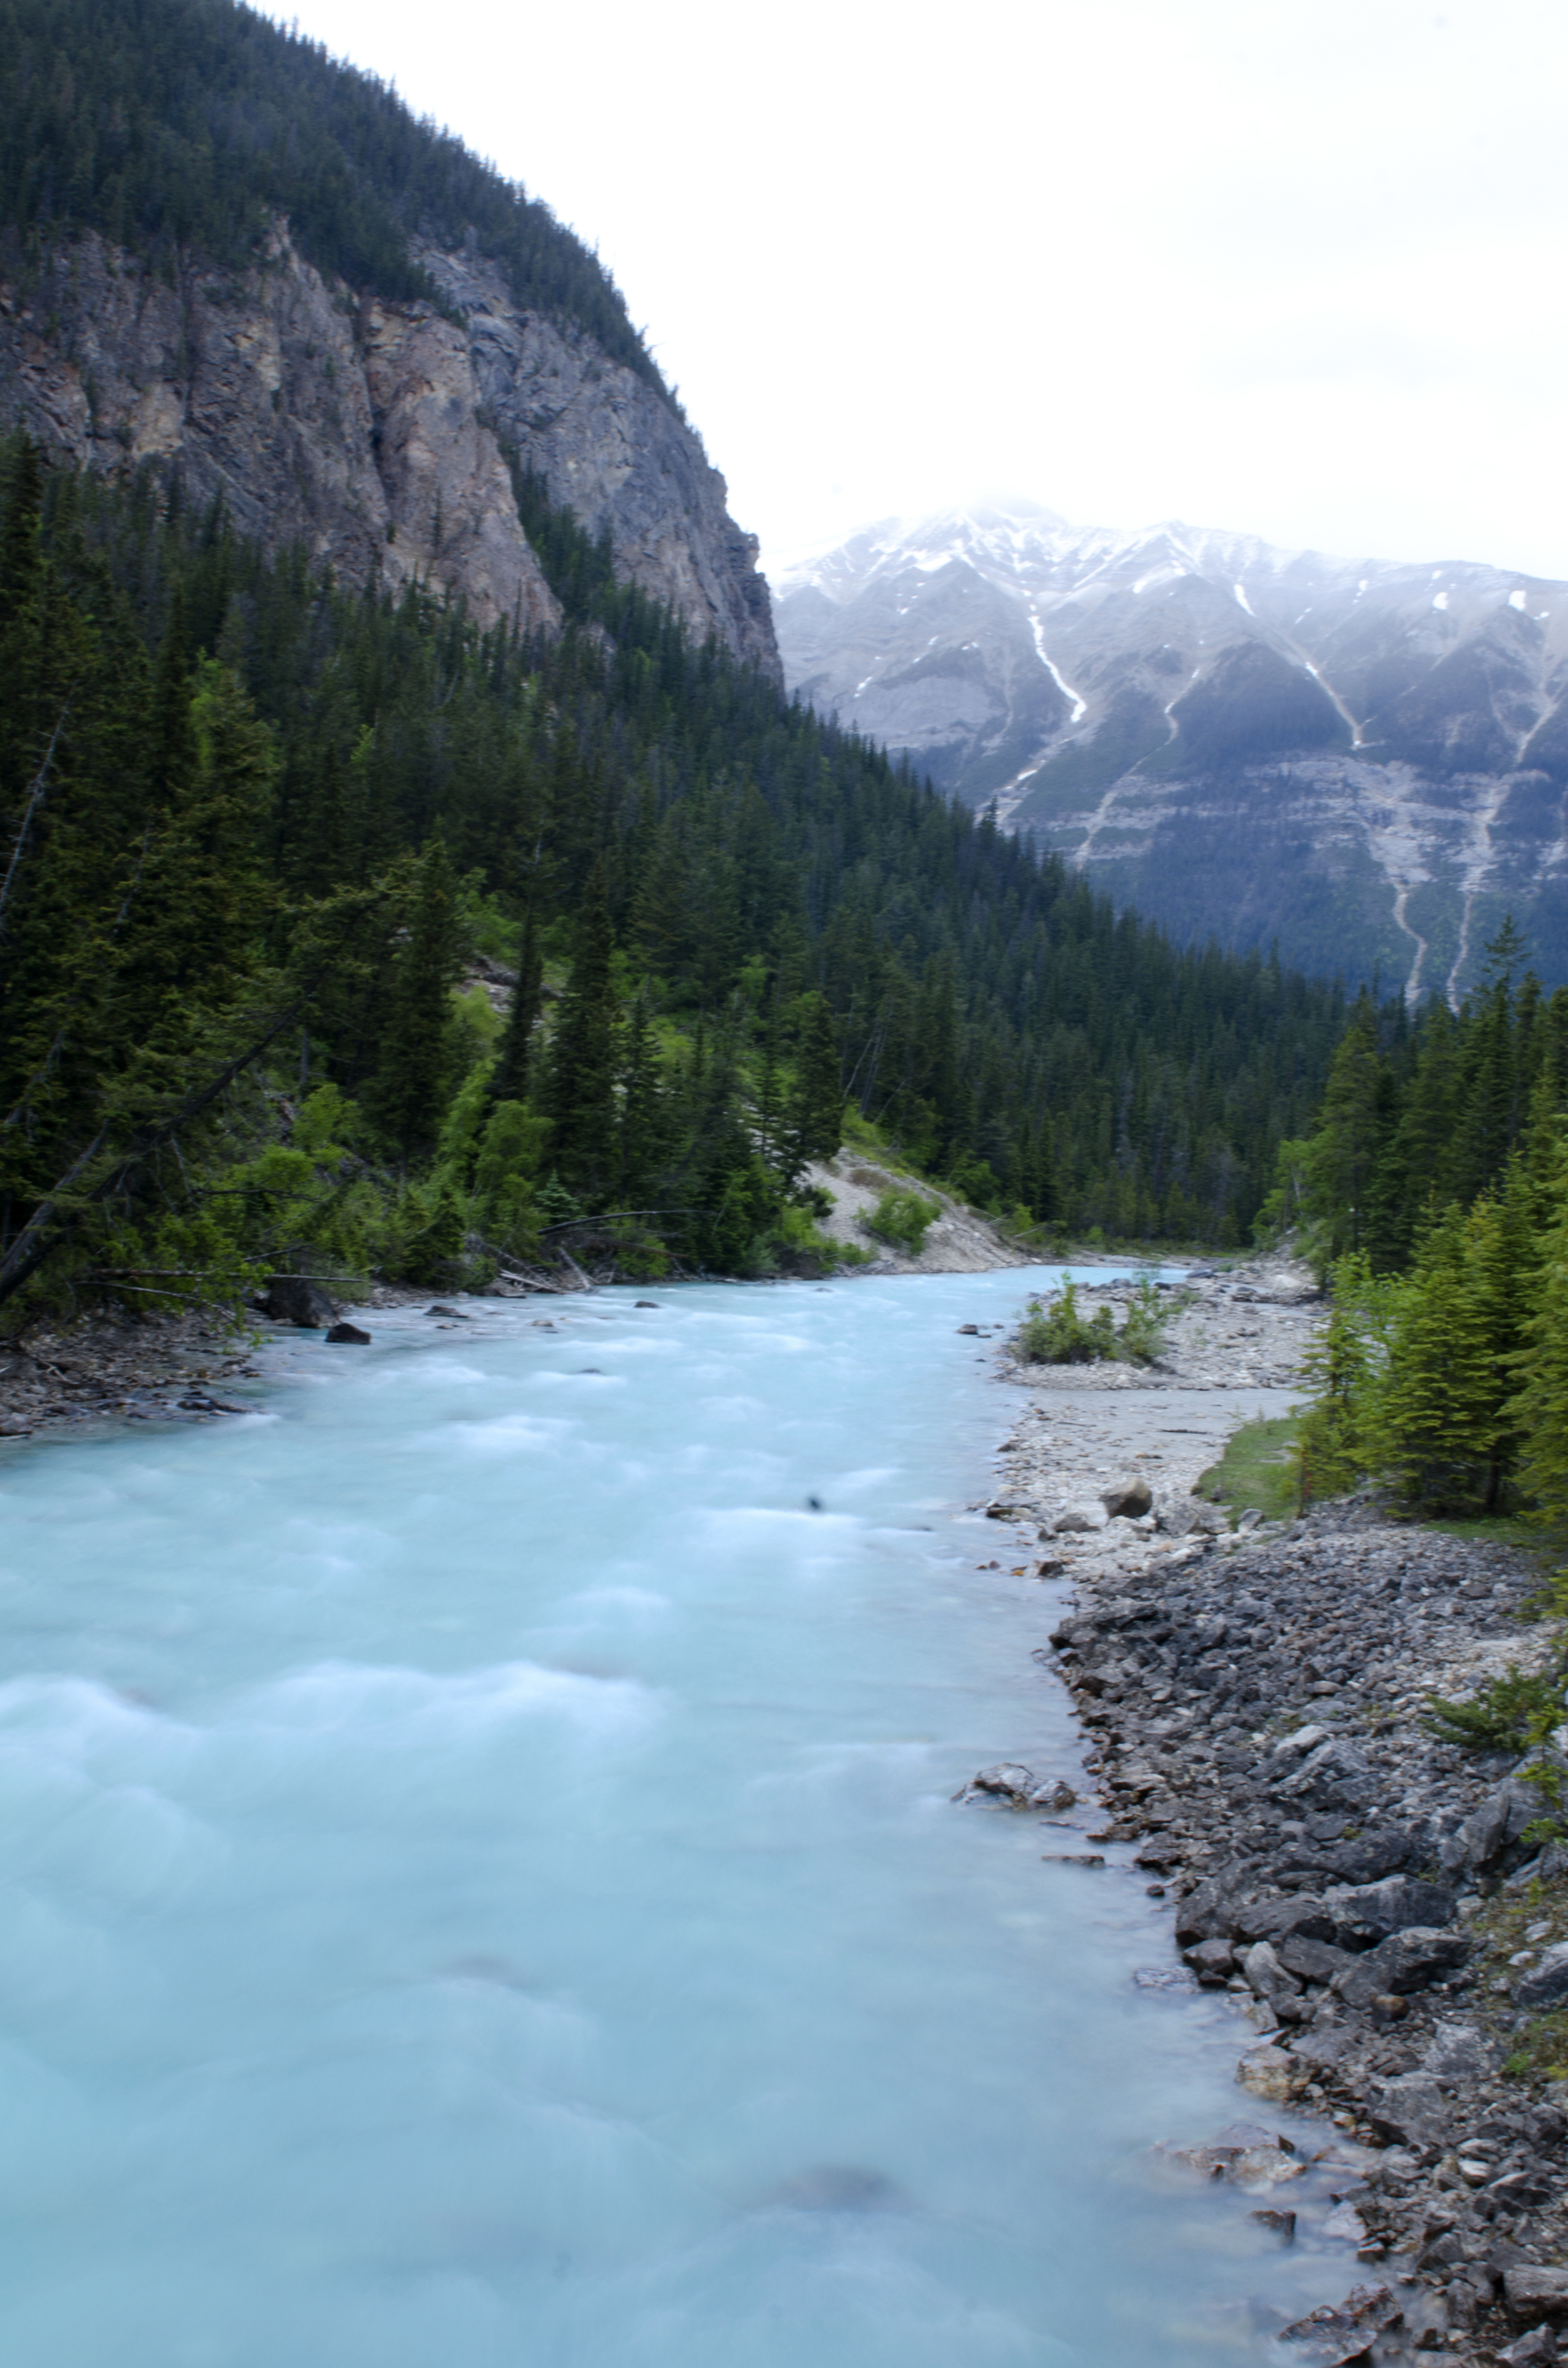 The lovely river beside the Kicking Horse campground